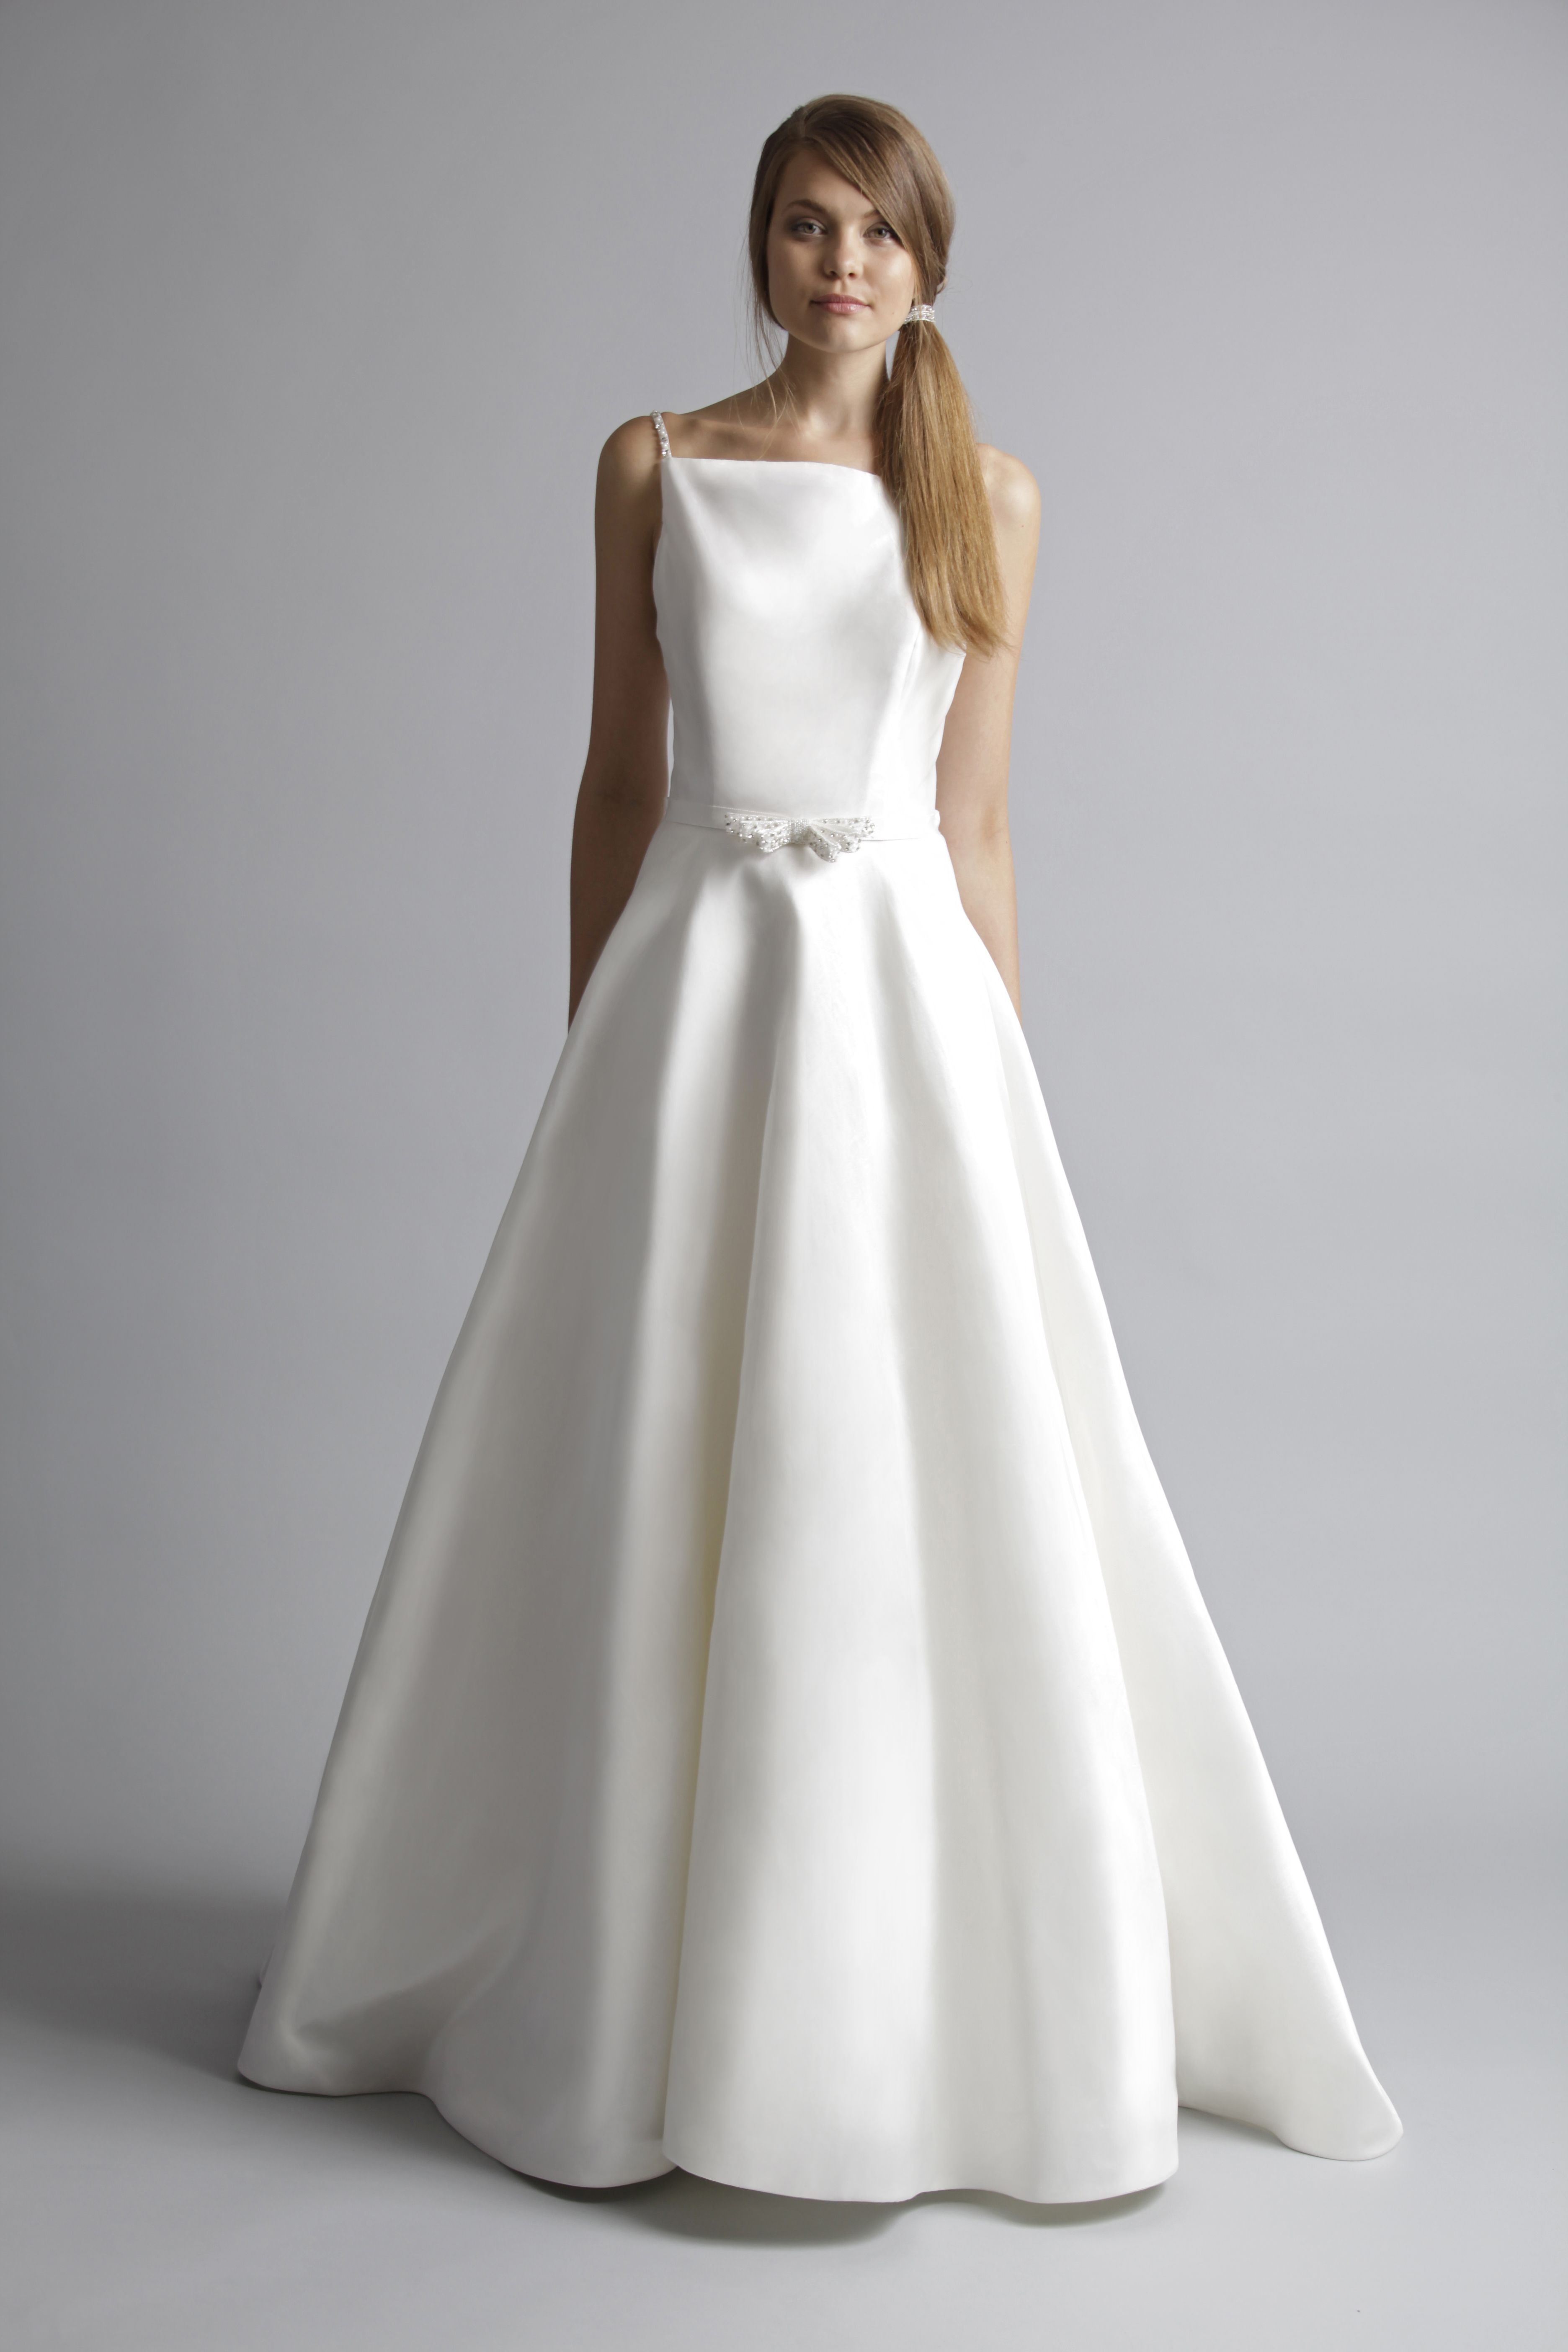 Wedding Dress Styles To Make You Look Taller In 2020 Mother Wedding Dress Dresses Mother Of The Bride Dresses